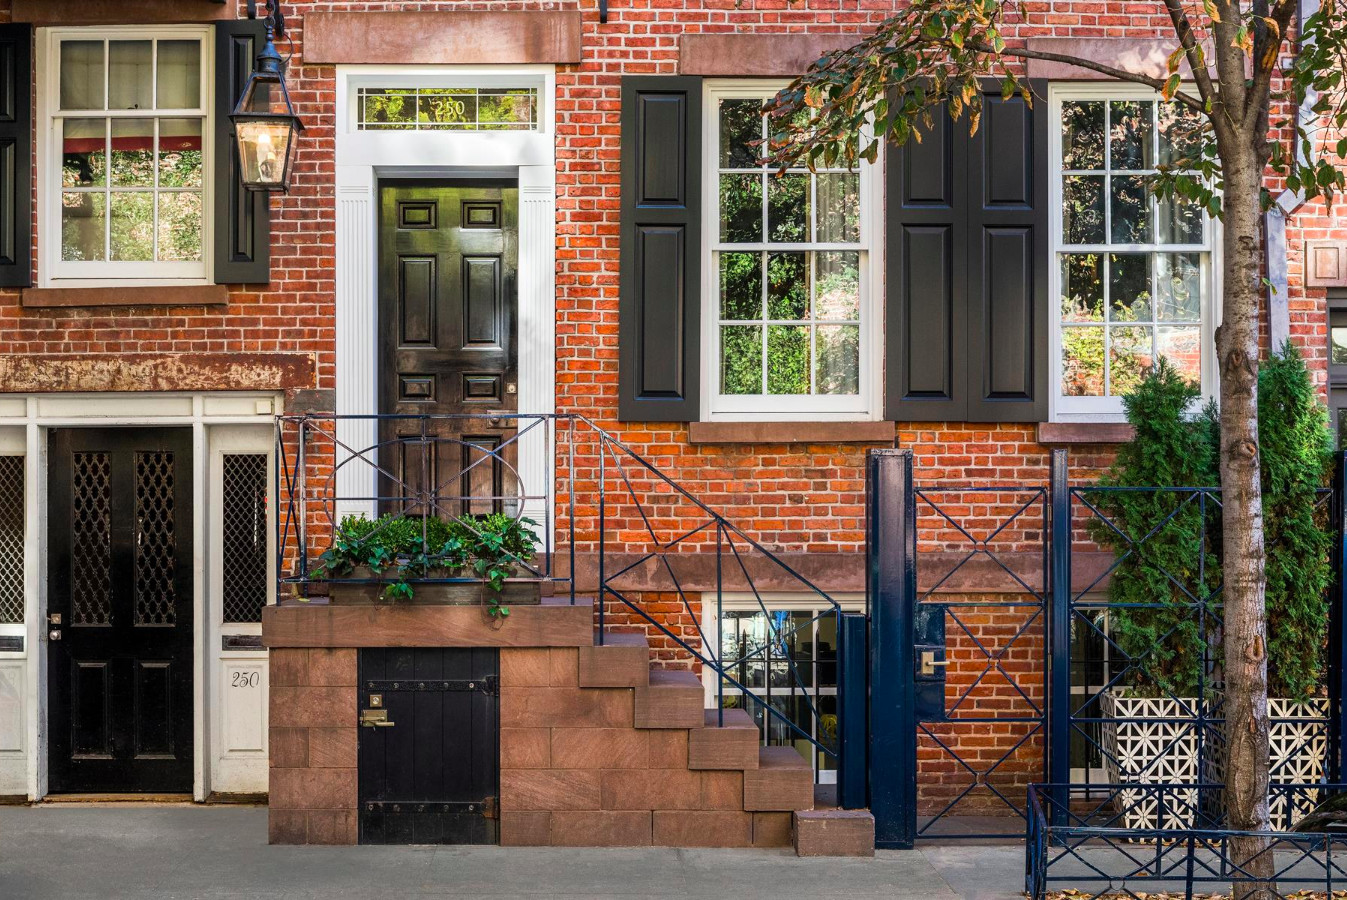 Explore This Uber-Luxurious 200-Year-Old West Village Townhouse Asking $11.25 Million